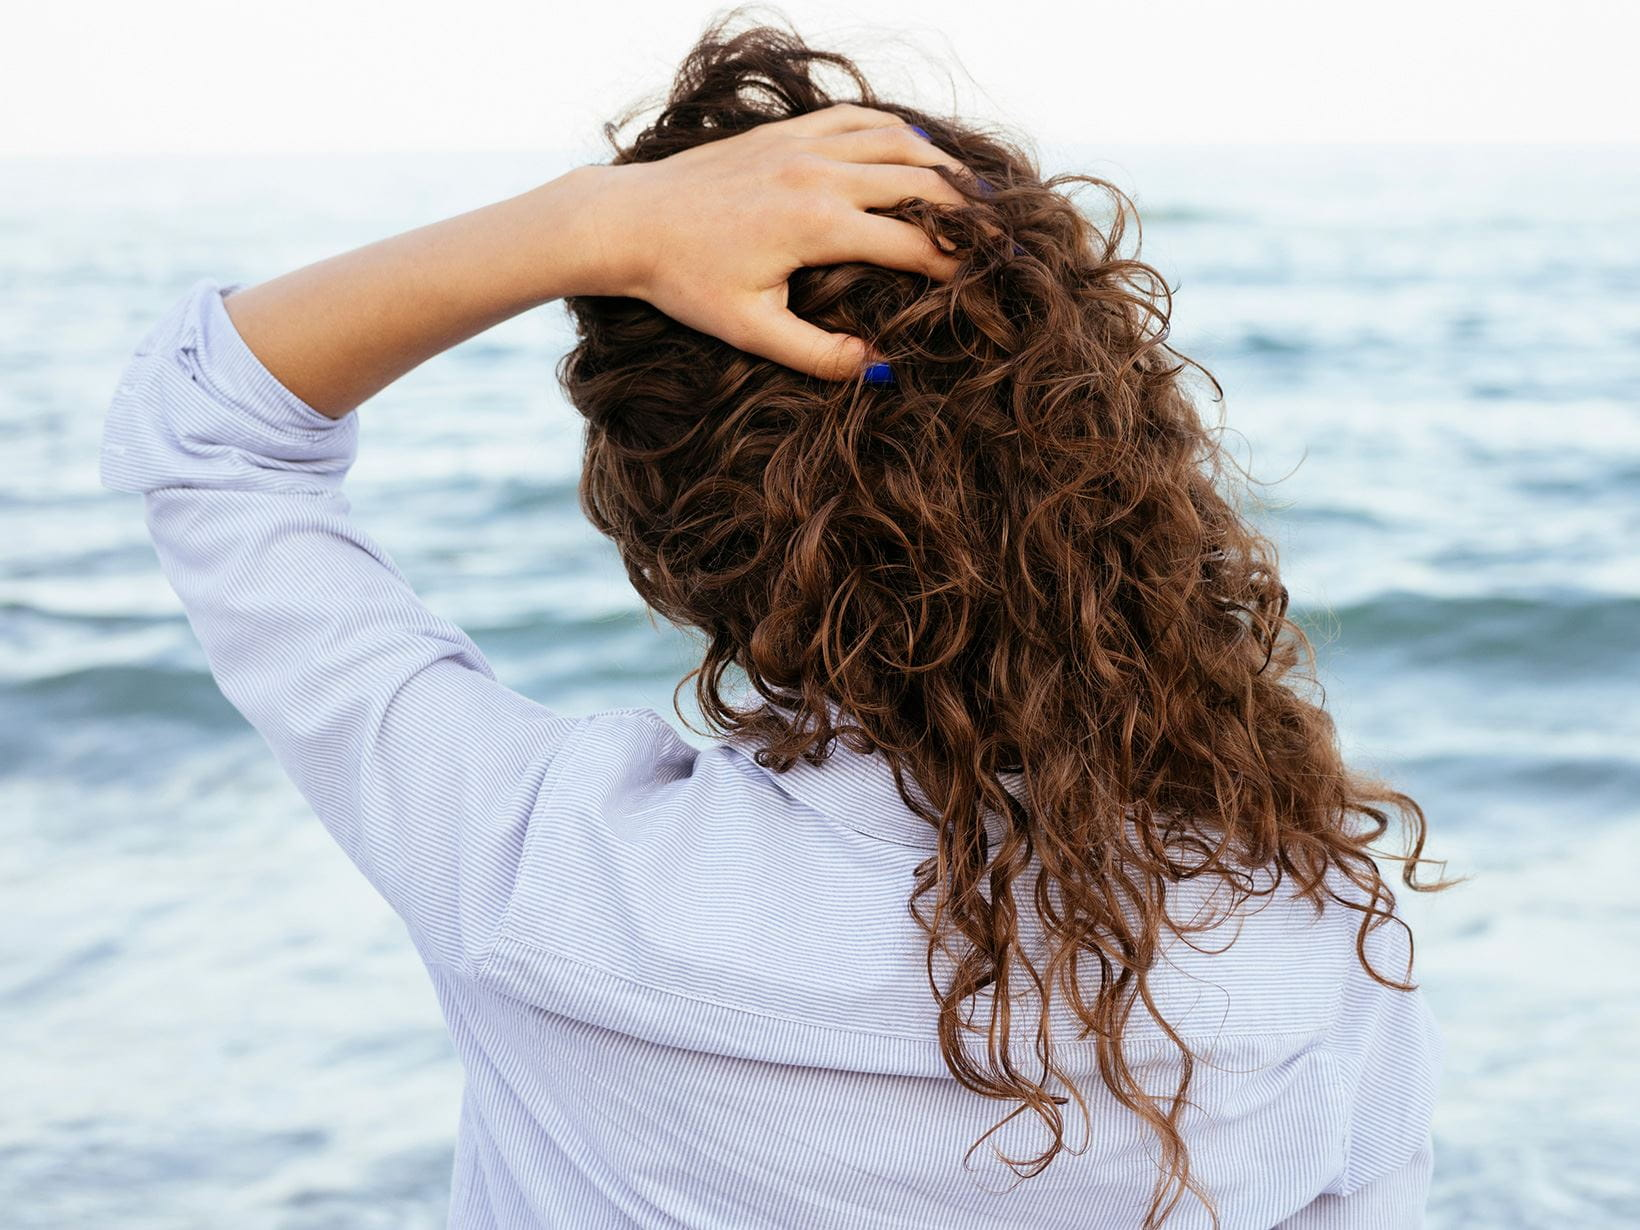 young-woman-with-curly-hair-looking-at-sea